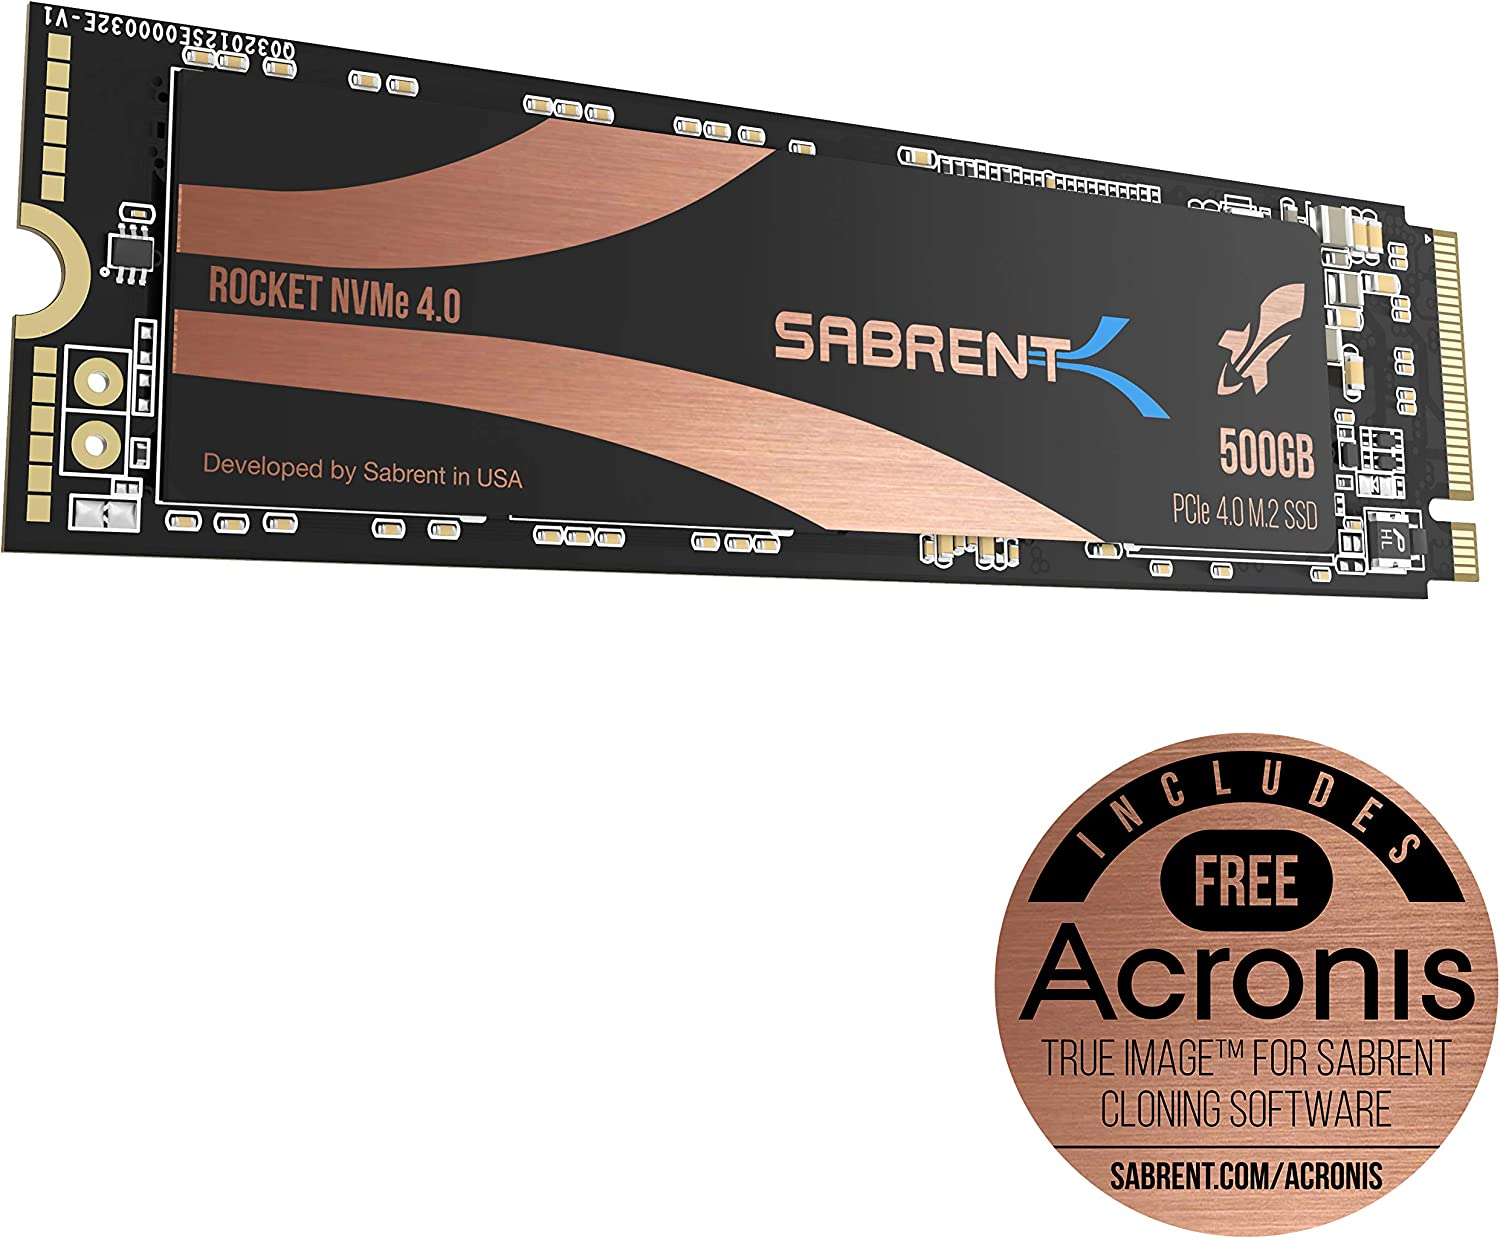 Sabrent 500GB Rocket Nvme PCIe 4.0 M.2 2280 Internal SSD Maximum Performance Solid State Drive (SB-ROCKET-NVMe4-500)